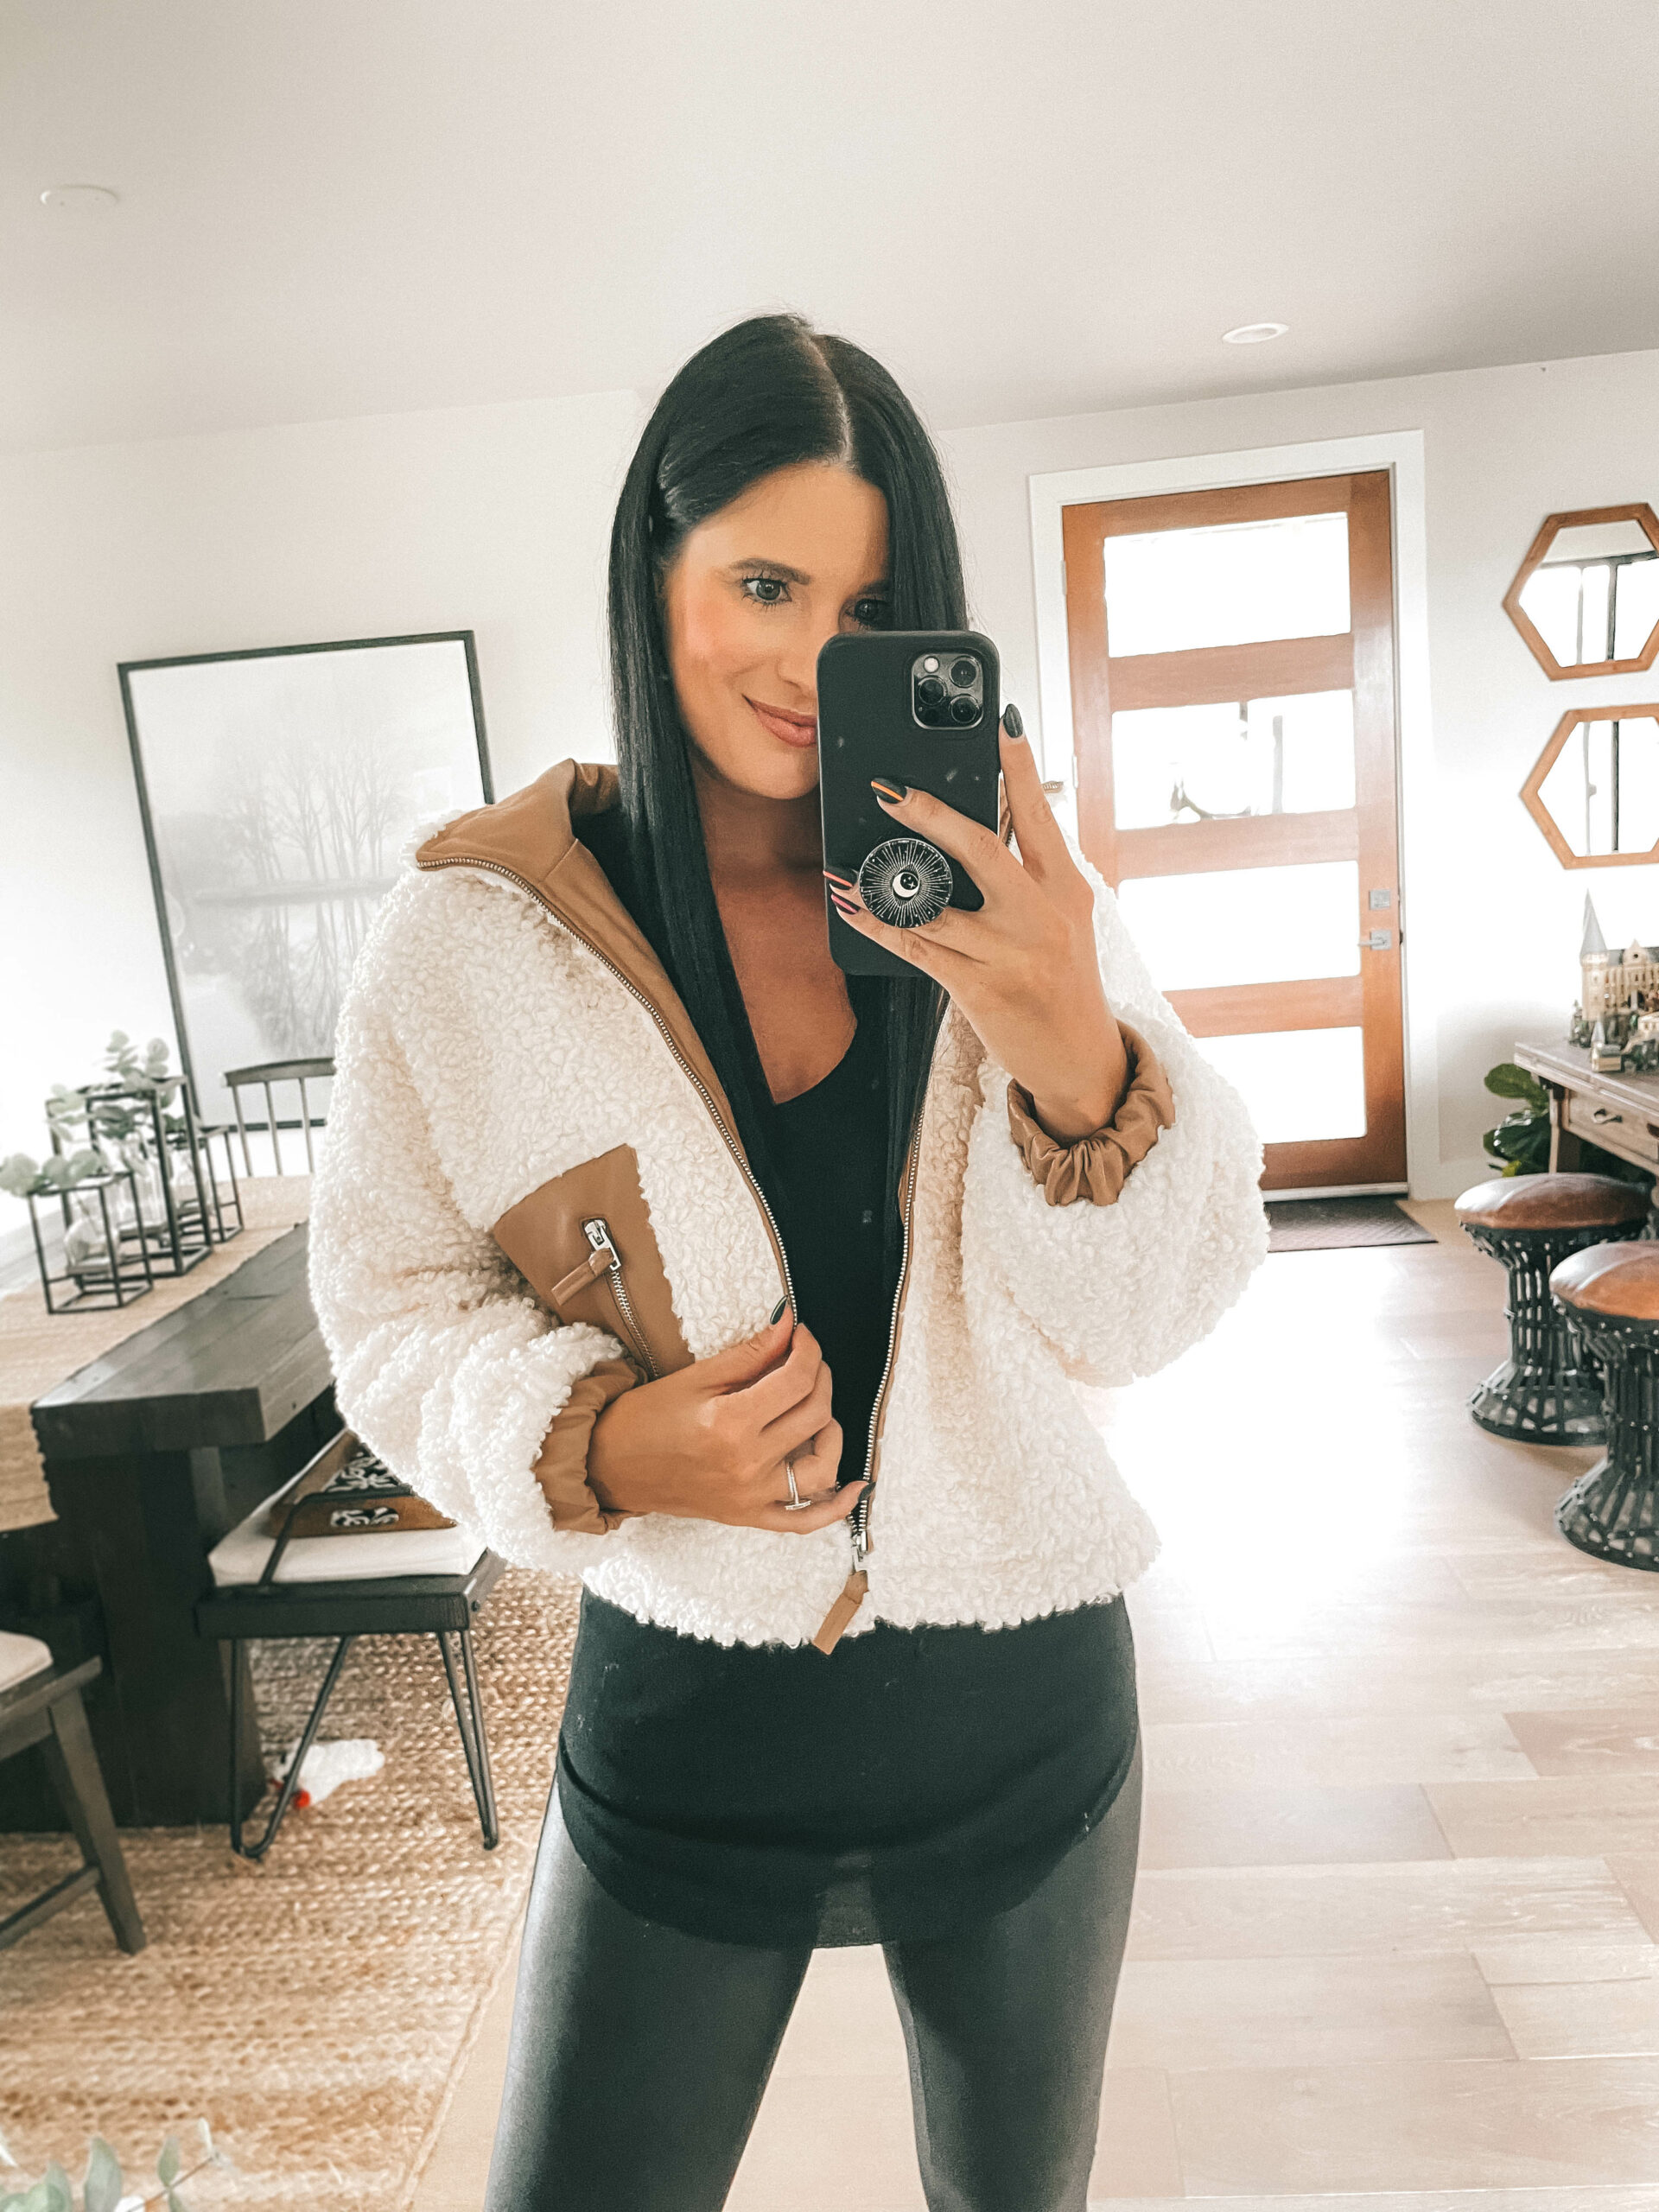 Nordstrom Anniversary Sale by popular Austin fashion blog, Dressed to Kill: image of a woman wearing a cream fleece jacket, black top, and black faux leather leggings.